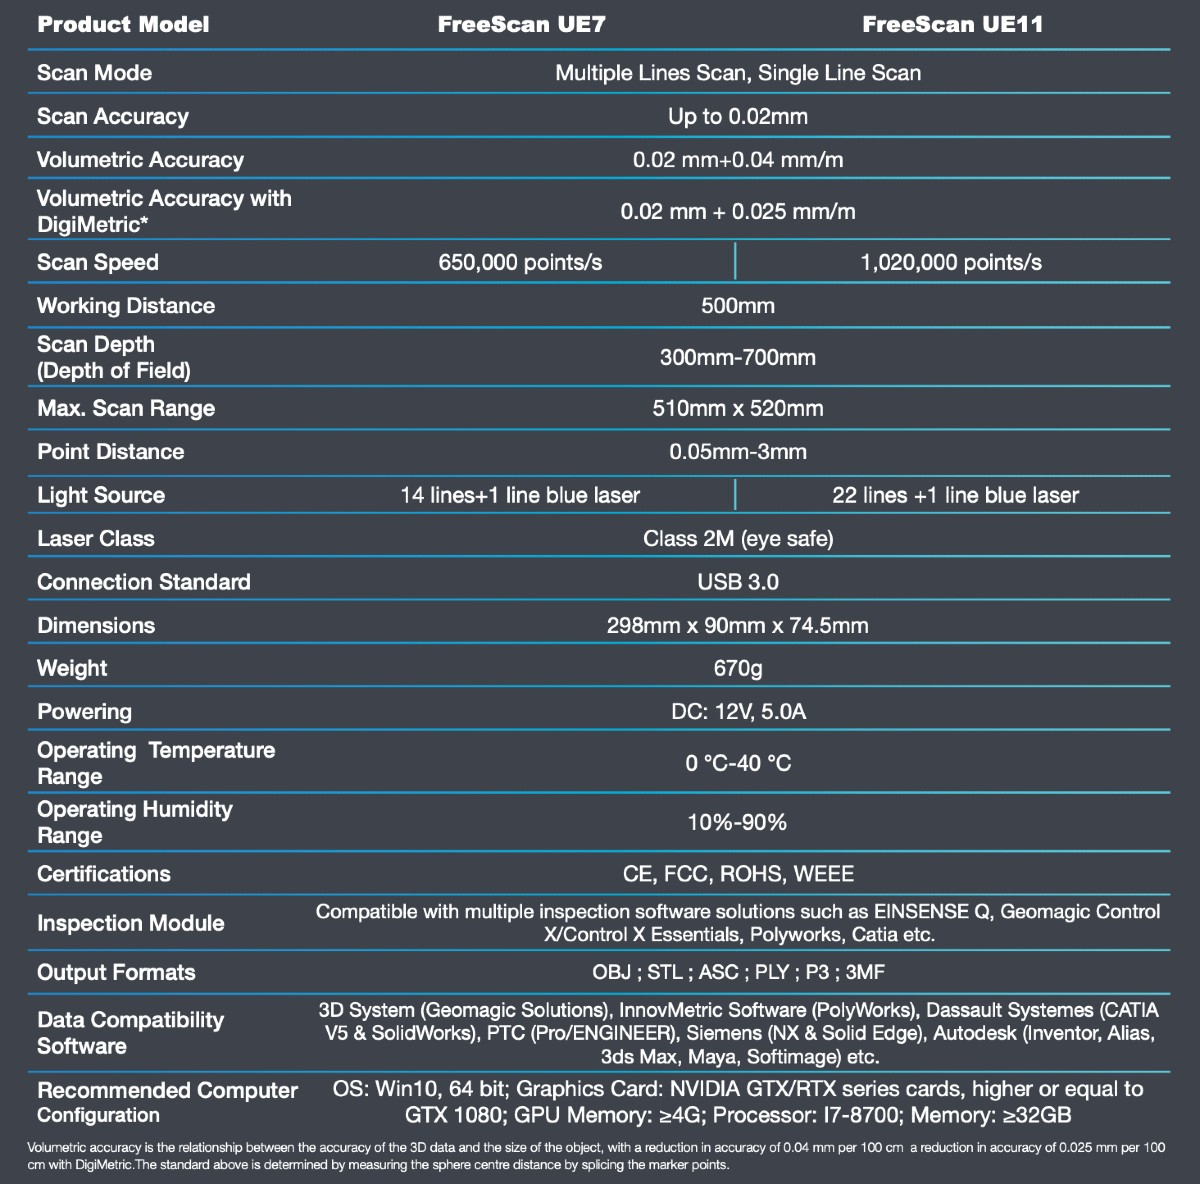 freescan ue7 specification